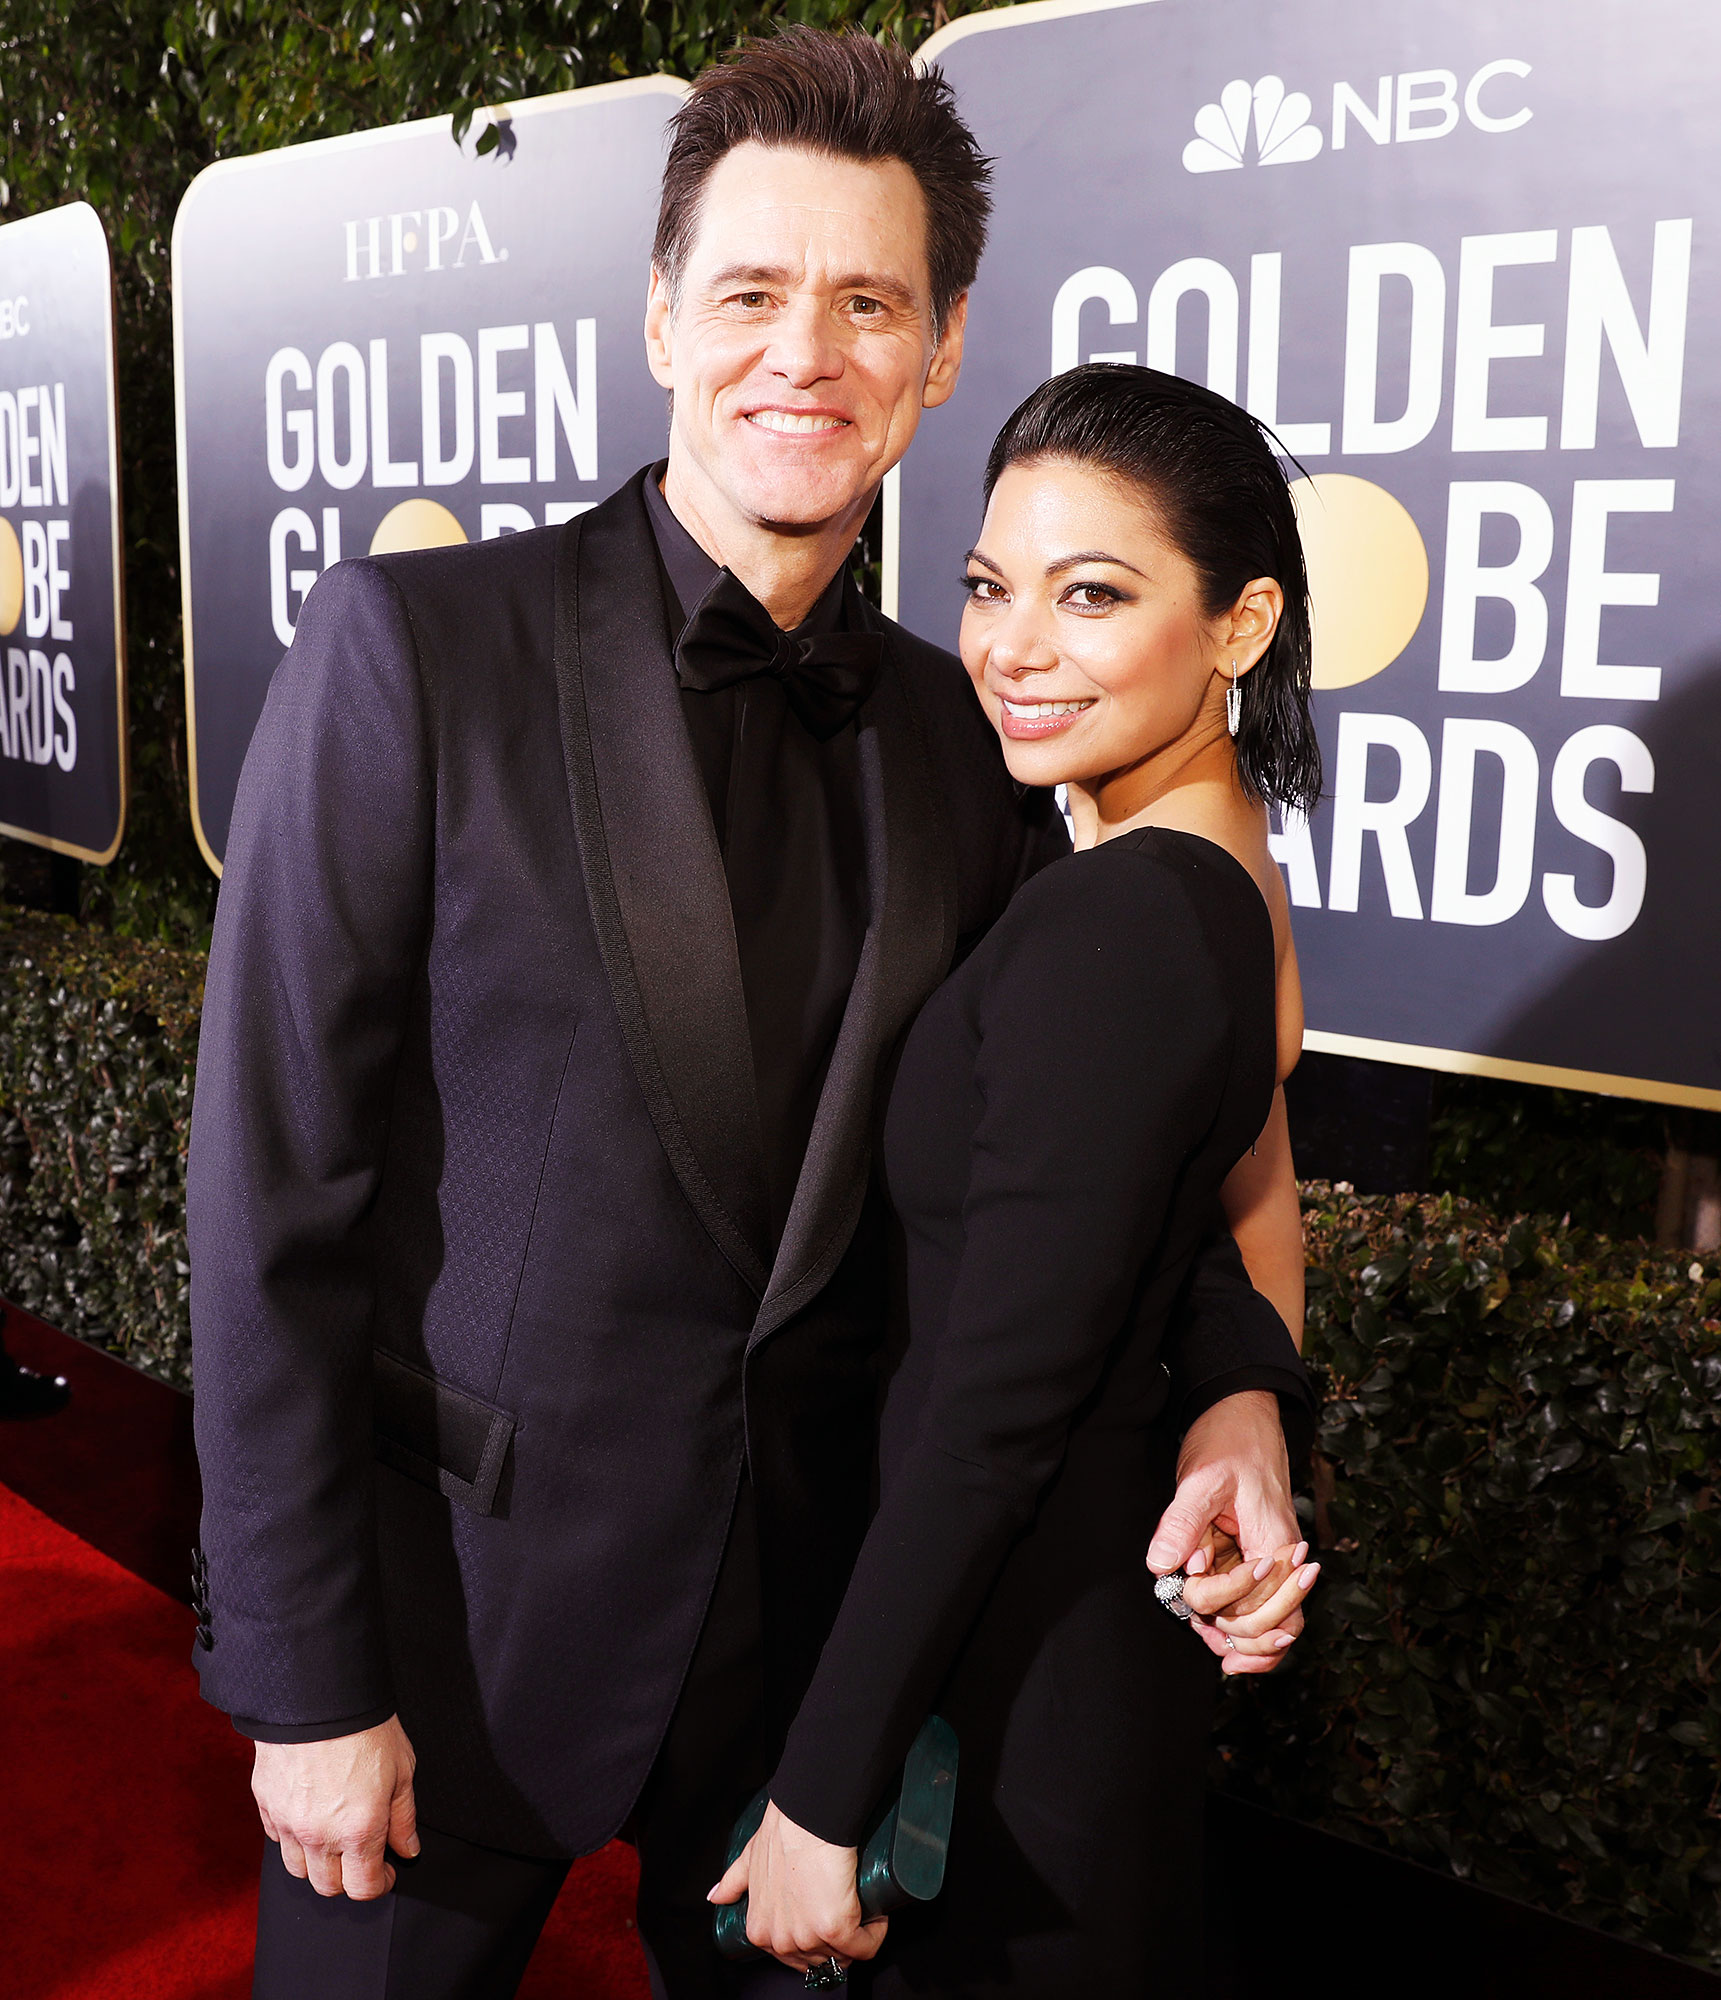 Jim Carrey Ginger Gonzaga Golden Globes 2019